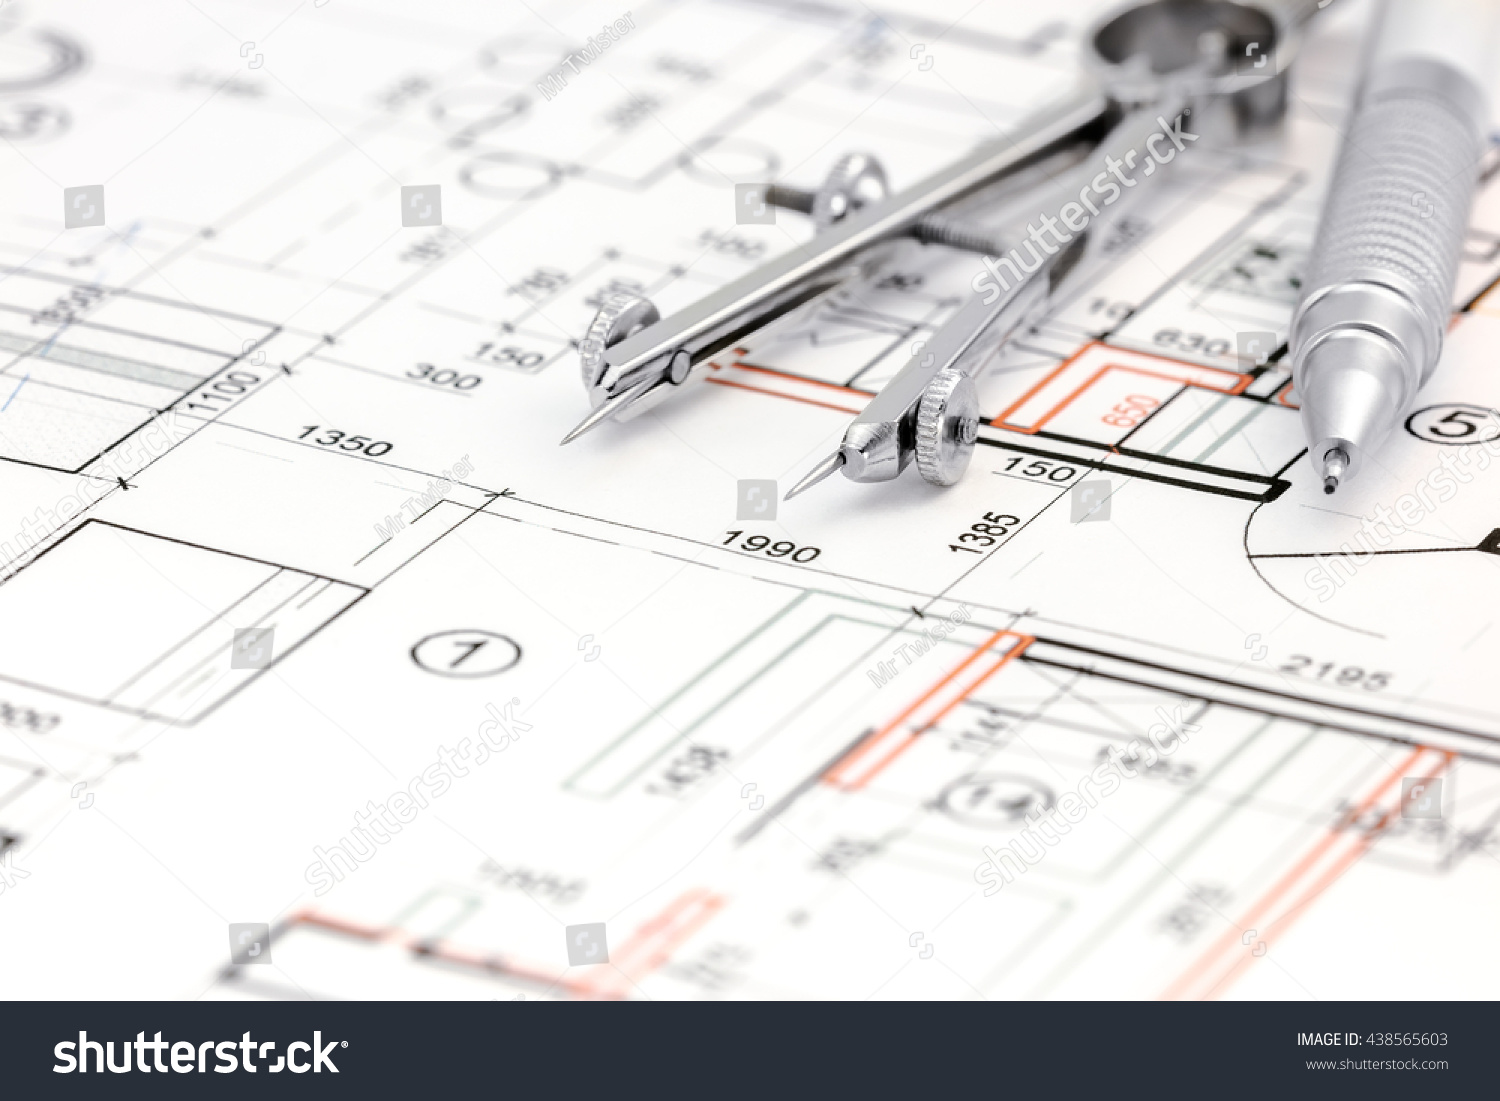 Architectural Drawings Floor Plan With Drawing Compass And Pencil Diagram Id 438565603